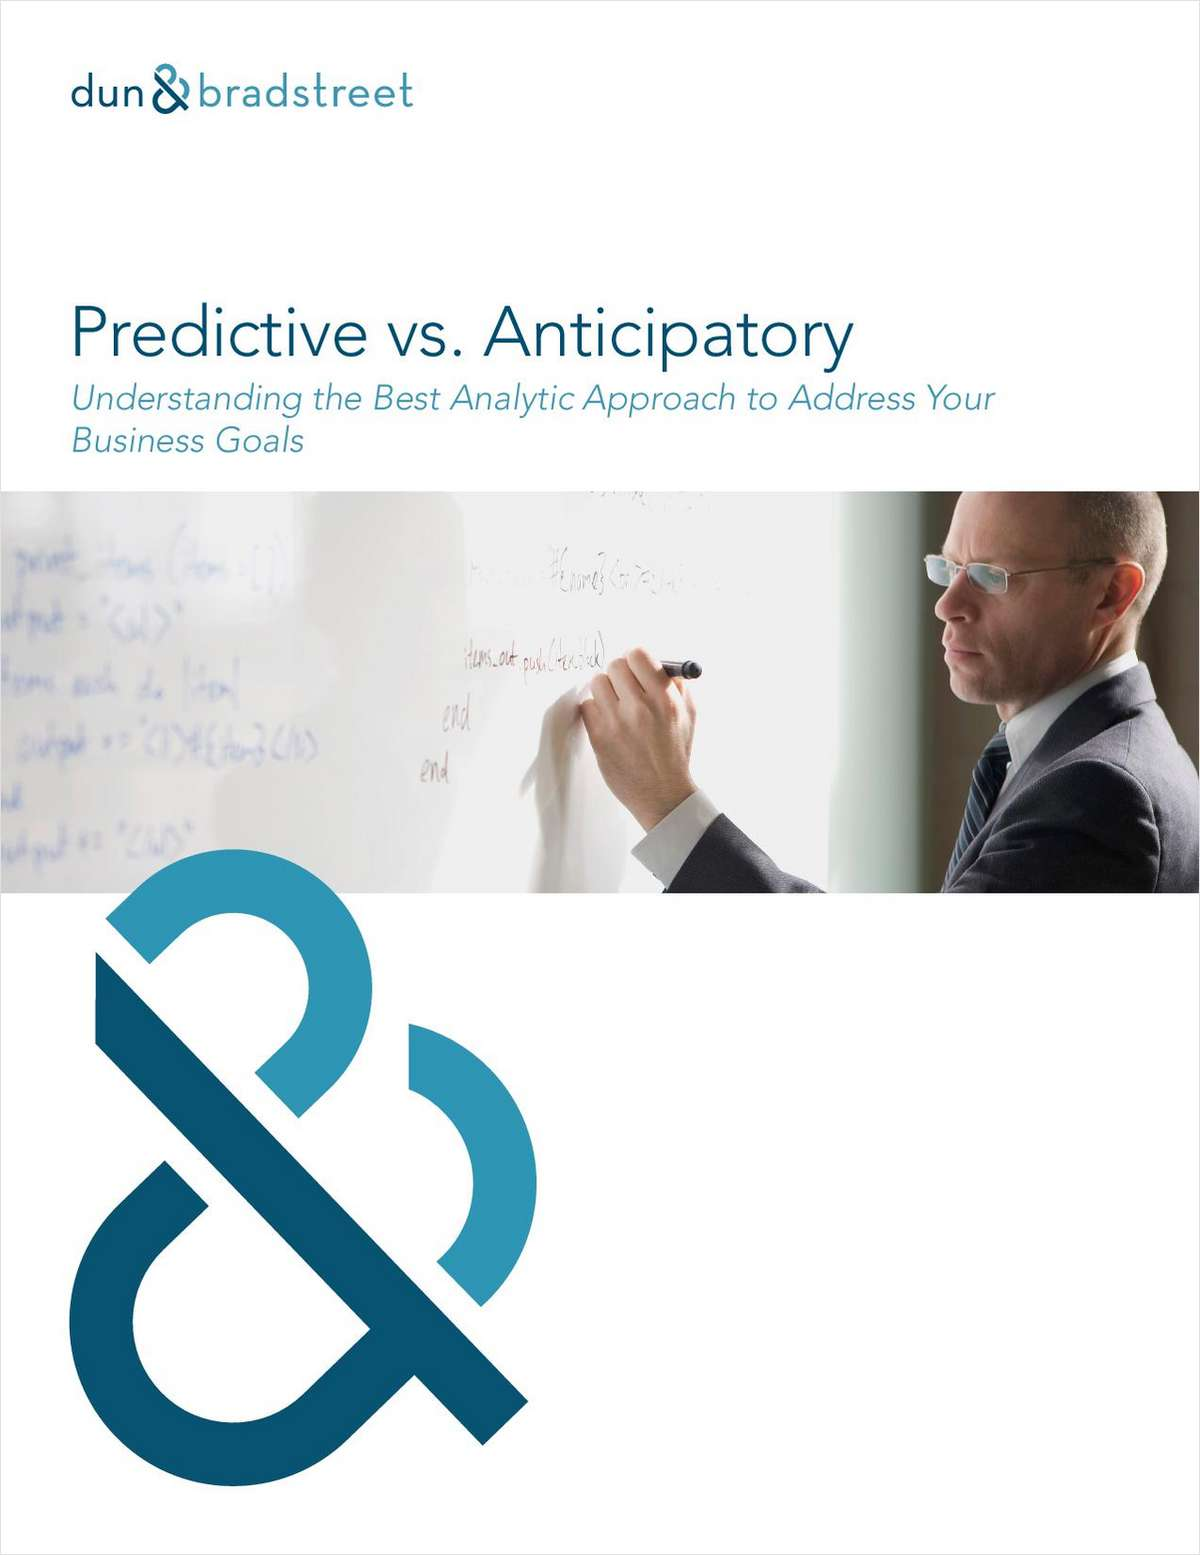 Predictive vs. Anticipatory: Understanding the Best Analytic Approach to Address Your Business Goals